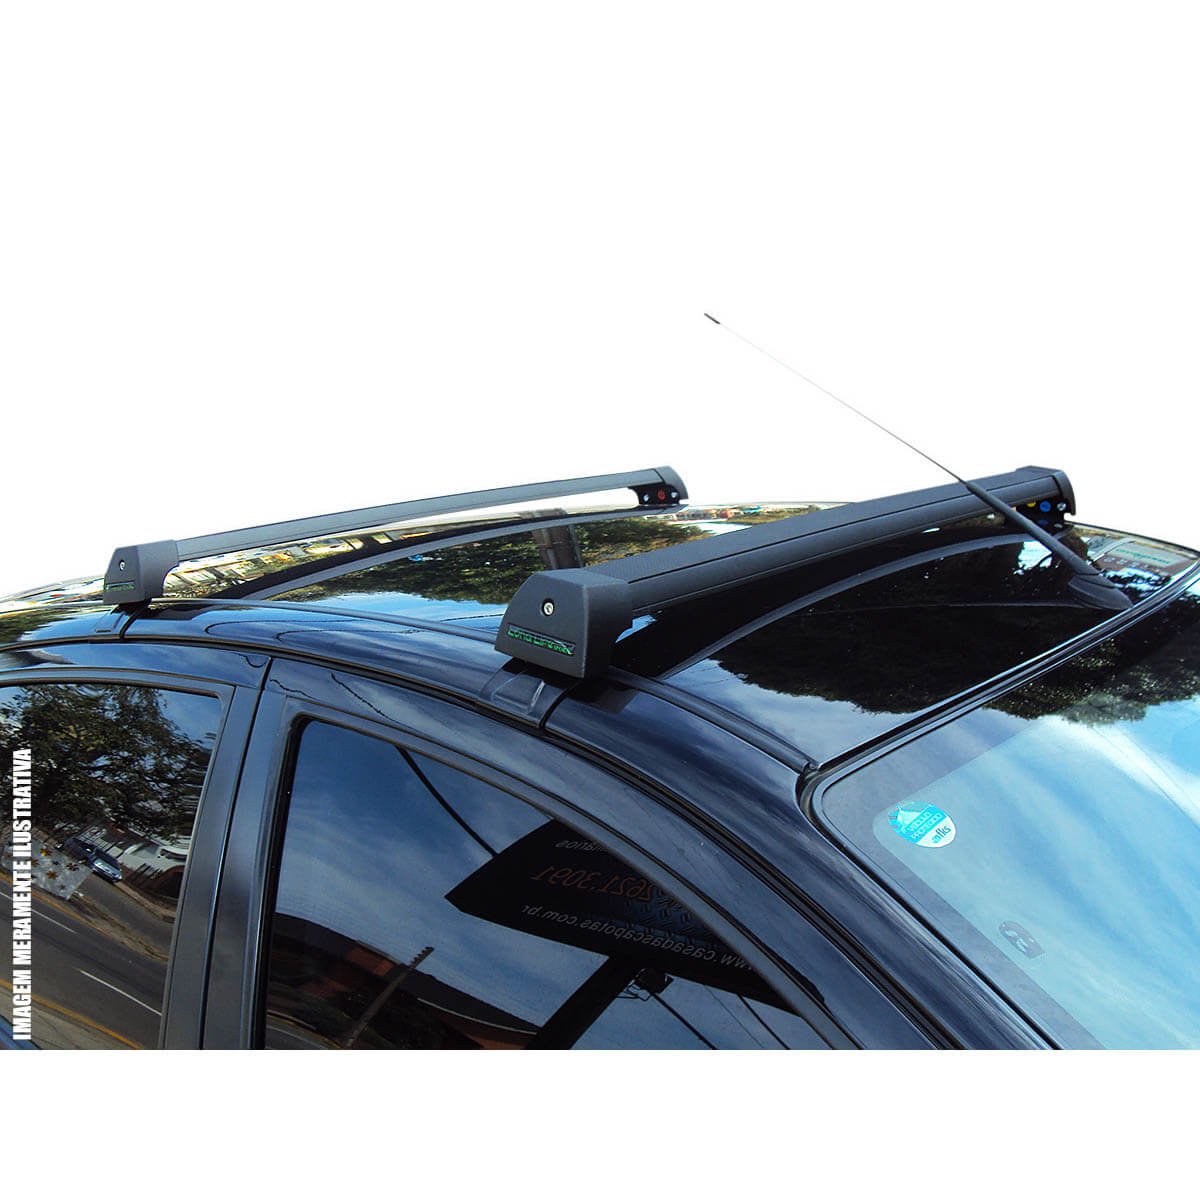 Rack de teto Long Life Sports preto Astra 2003 a 2011 4 portas